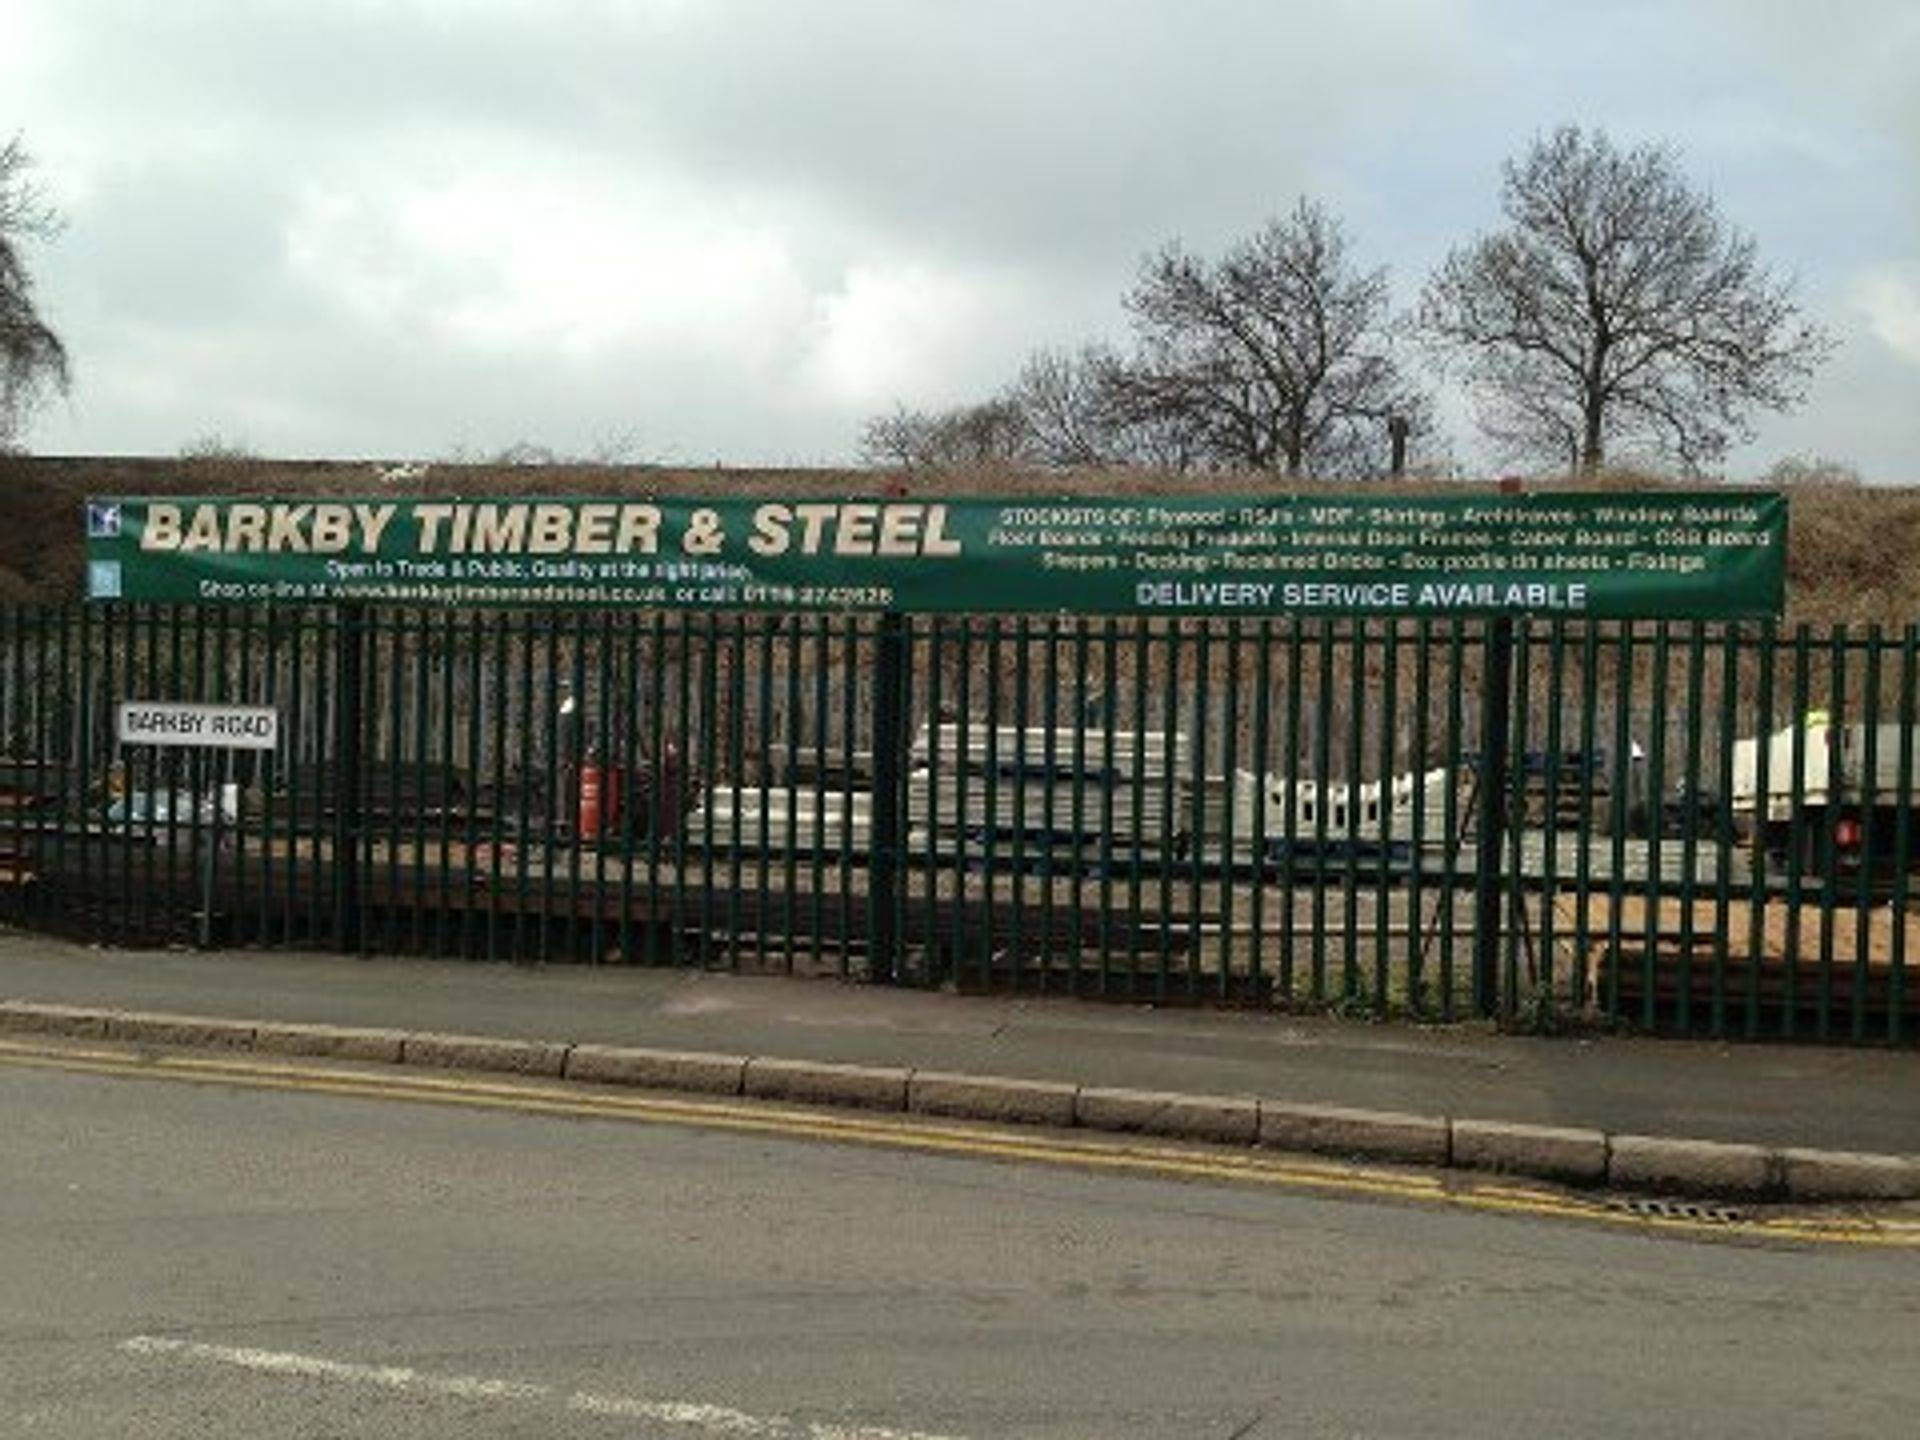 Barkby Timber and Steel